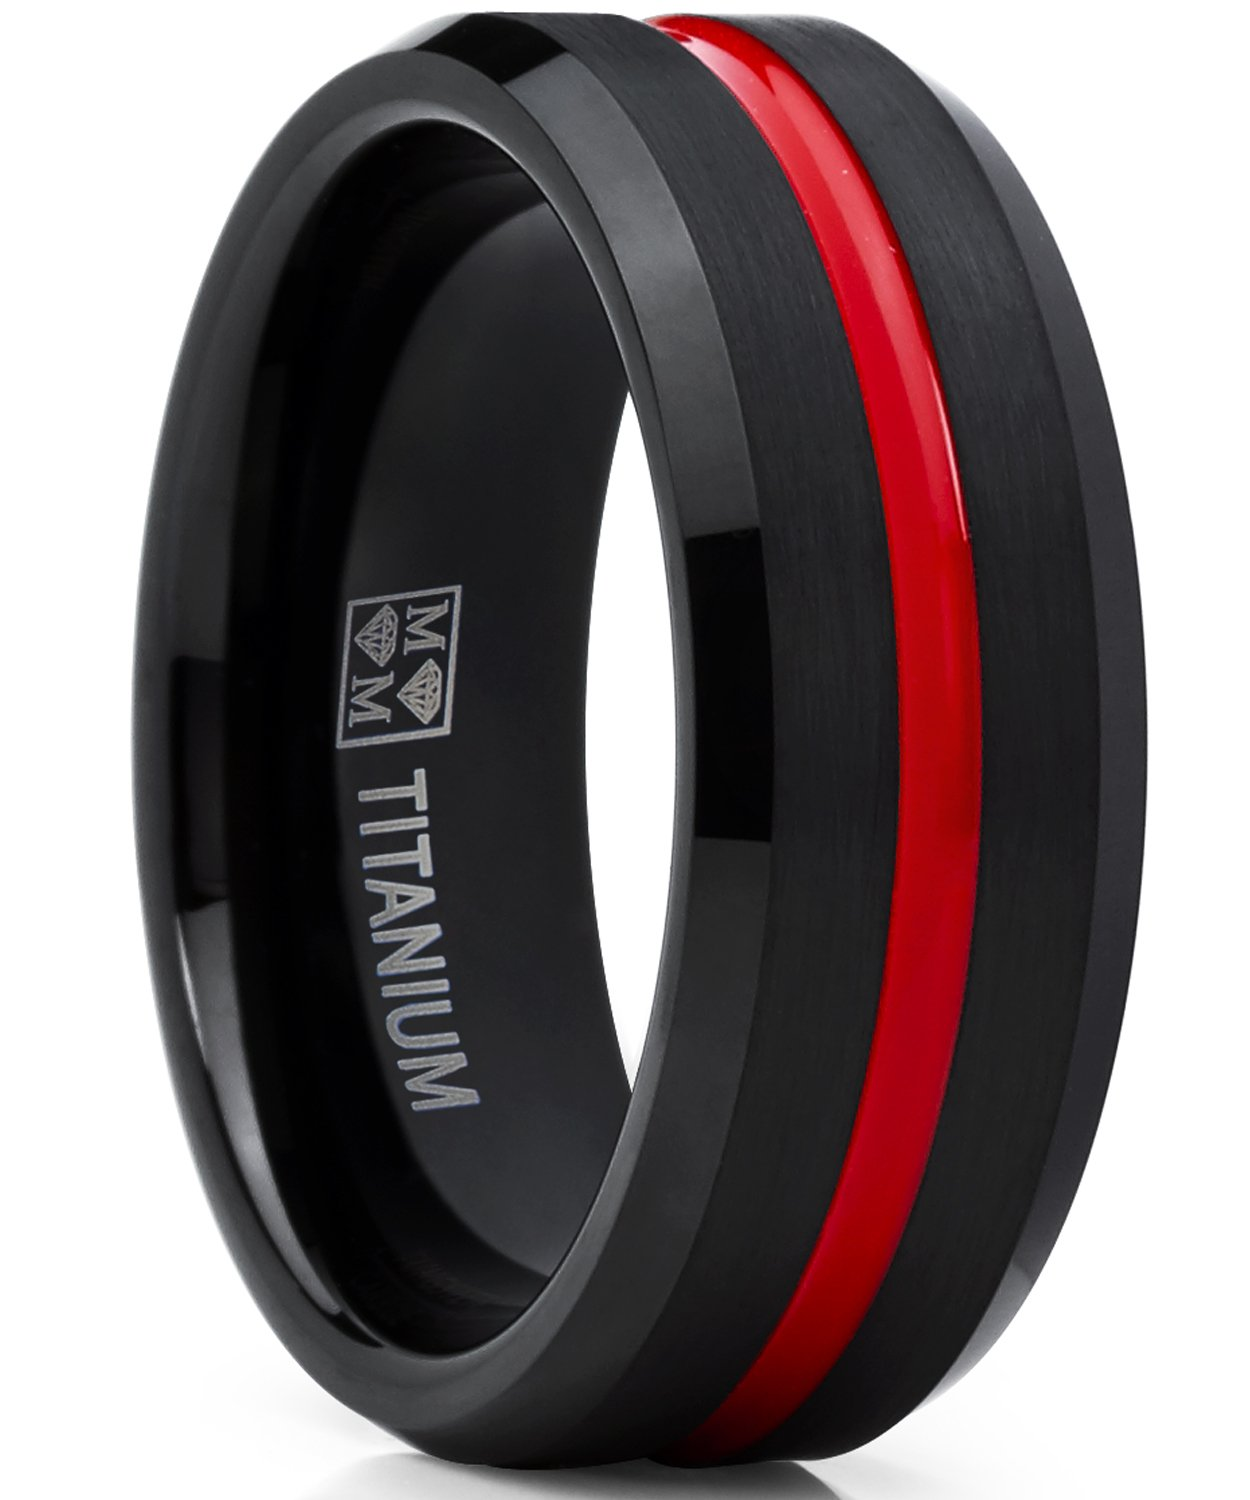 Metal Masters Co. Titanium Ring Wedding Band, Black and Red Plated Brushed Engagement Ring, Grooved, Comfort Fit 10